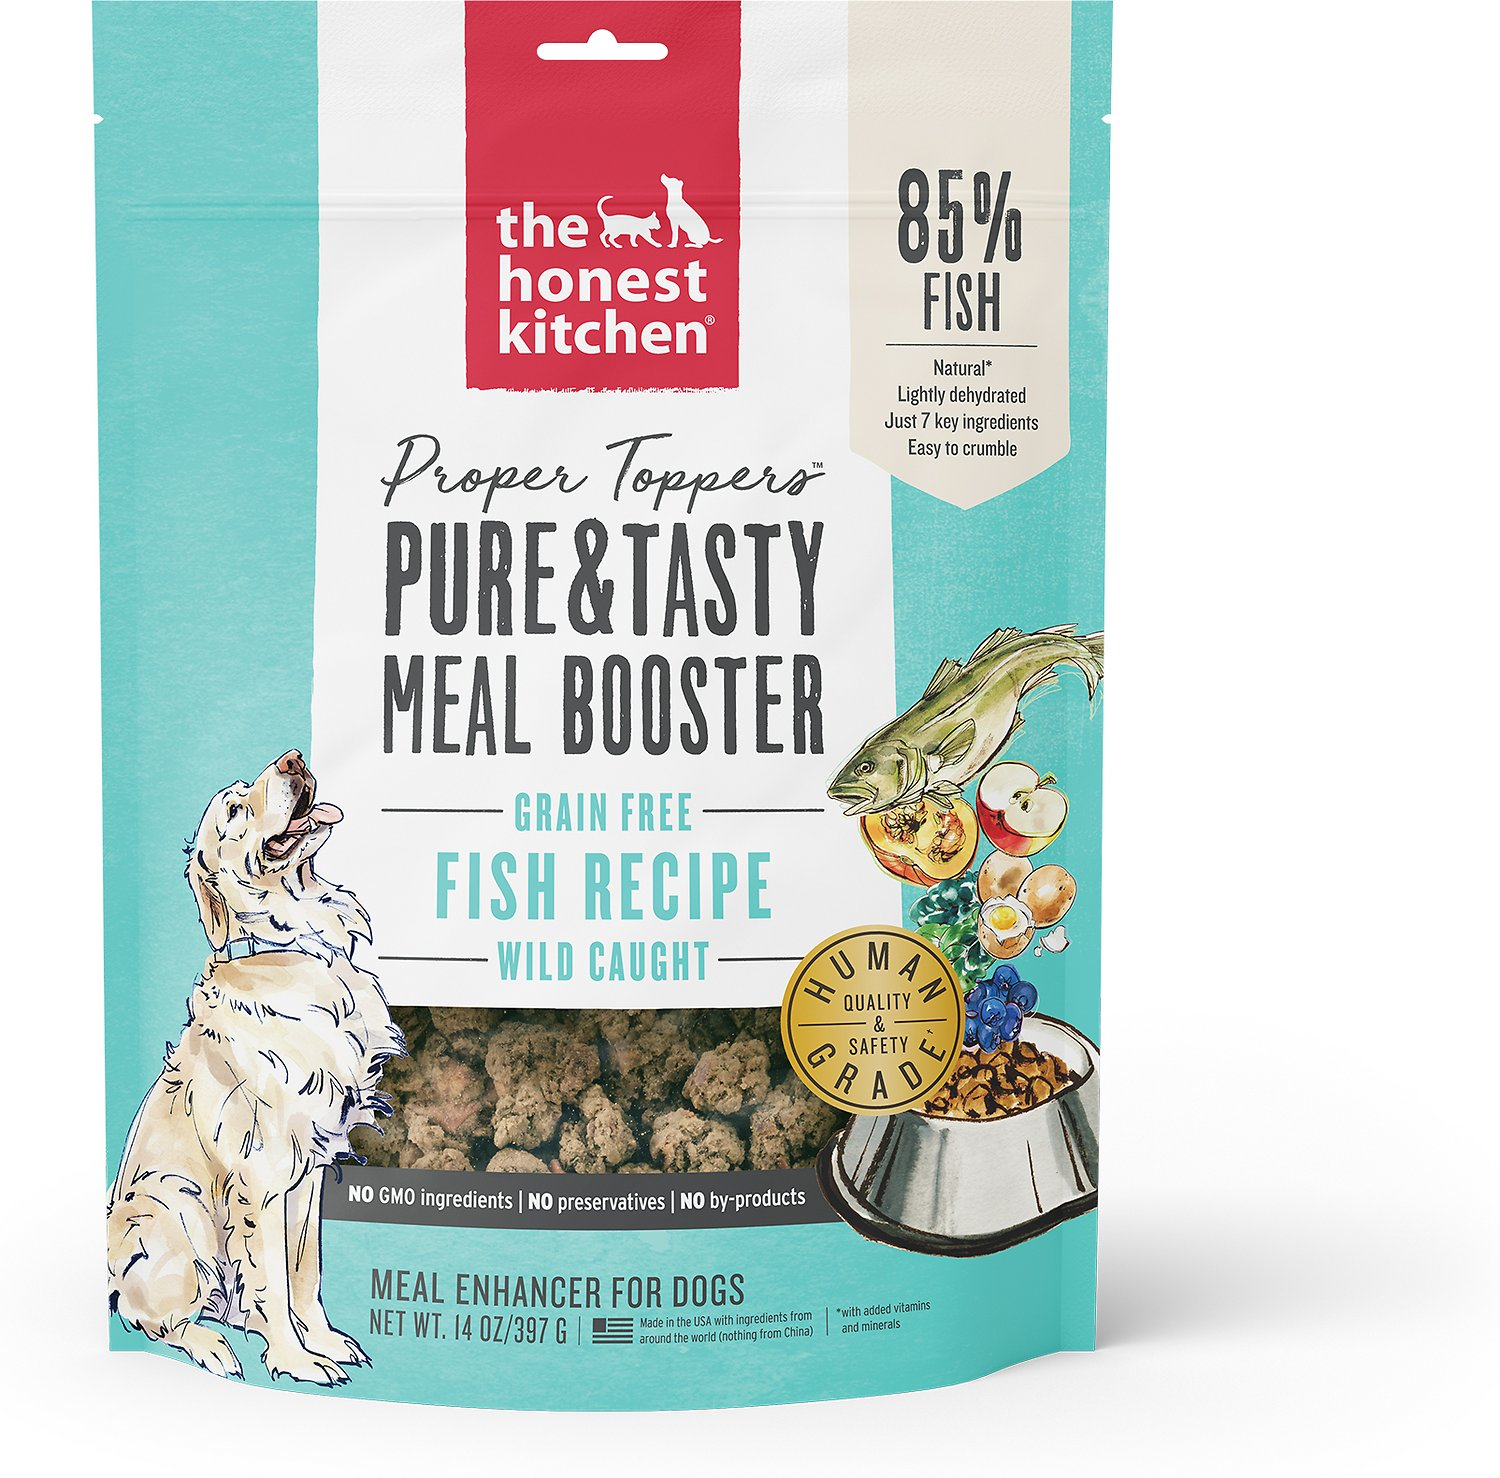 the honest kitchen proper toppers grain free fish recipe dog food